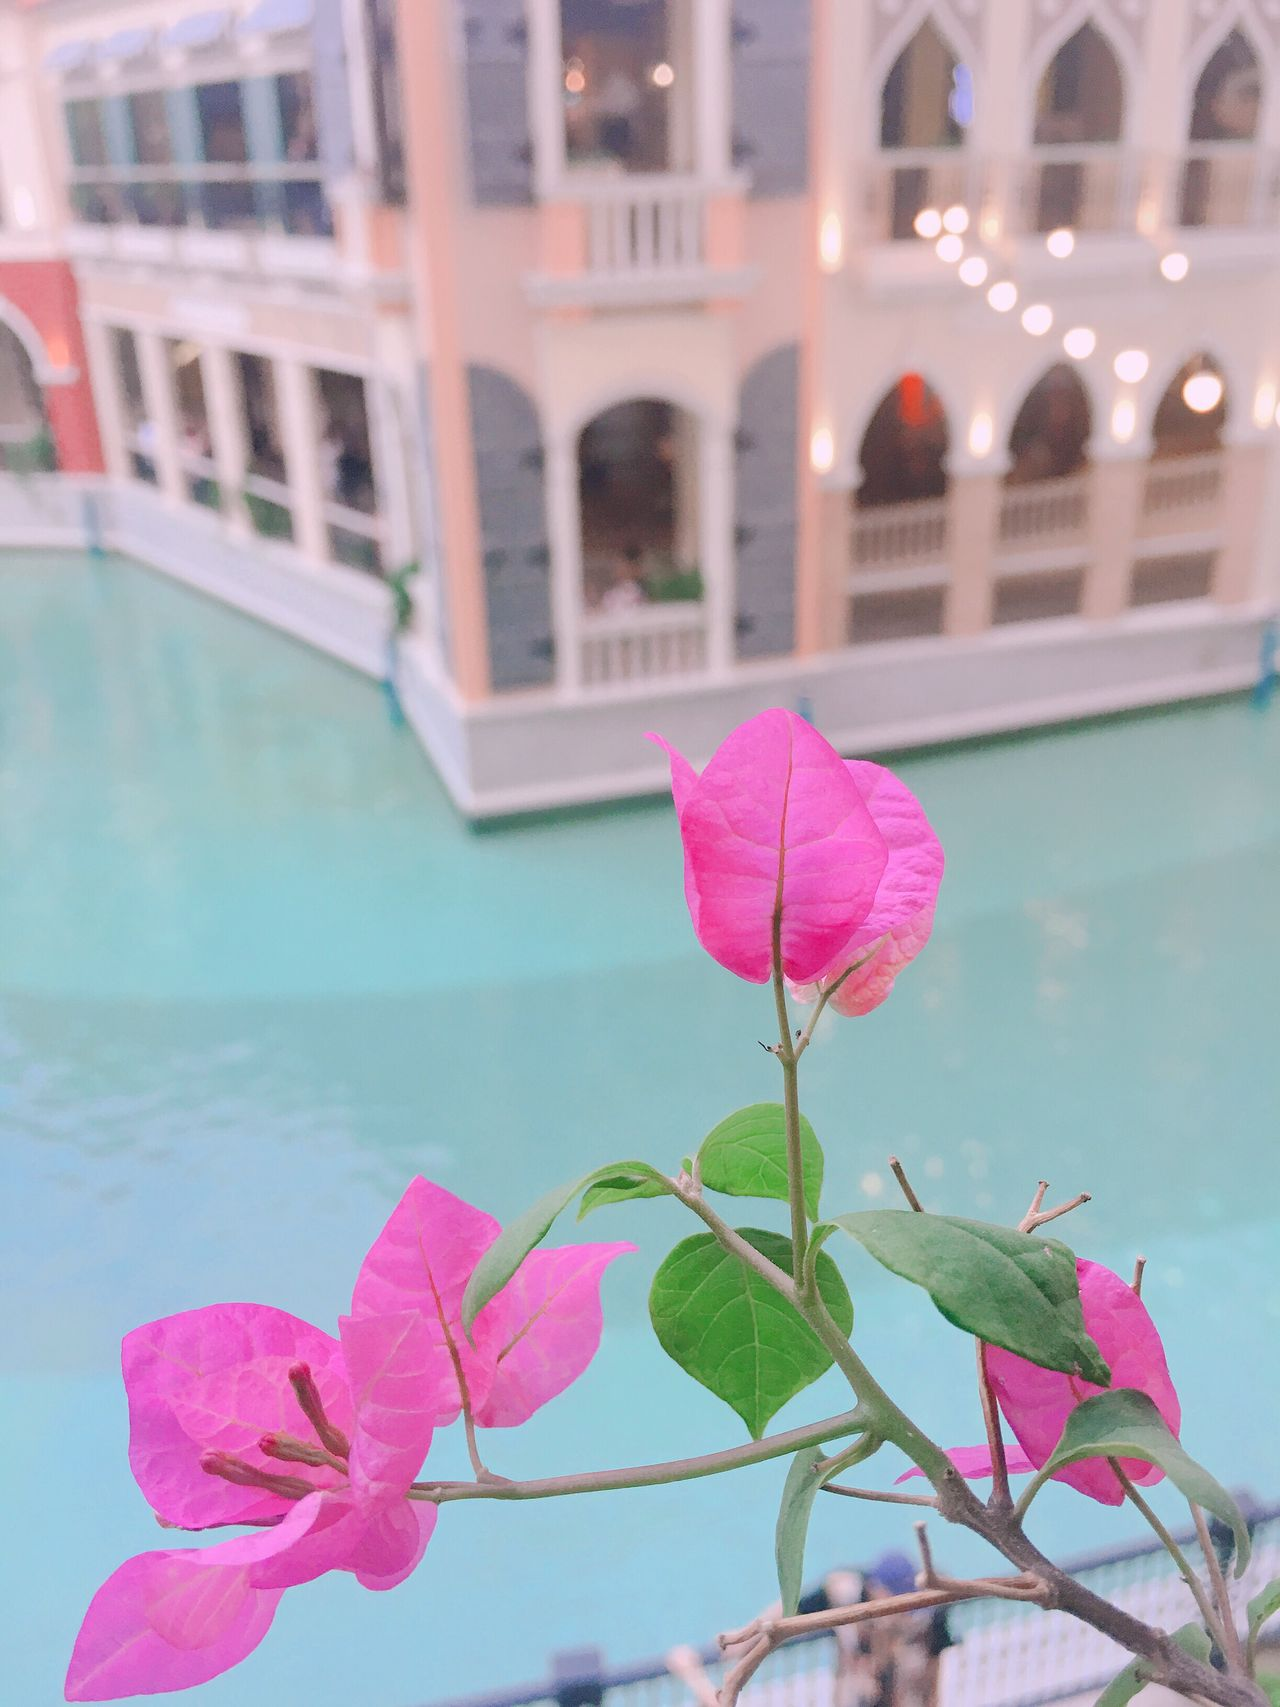 Pink Color Flower Leaf Day Fragility Petal Outdoors Beauty In Nature Growth Nature No People Architecture Plant Building Exterior Water Close-up Freshness Blooming Built Structure Bougainvillea Eyeem Philippines